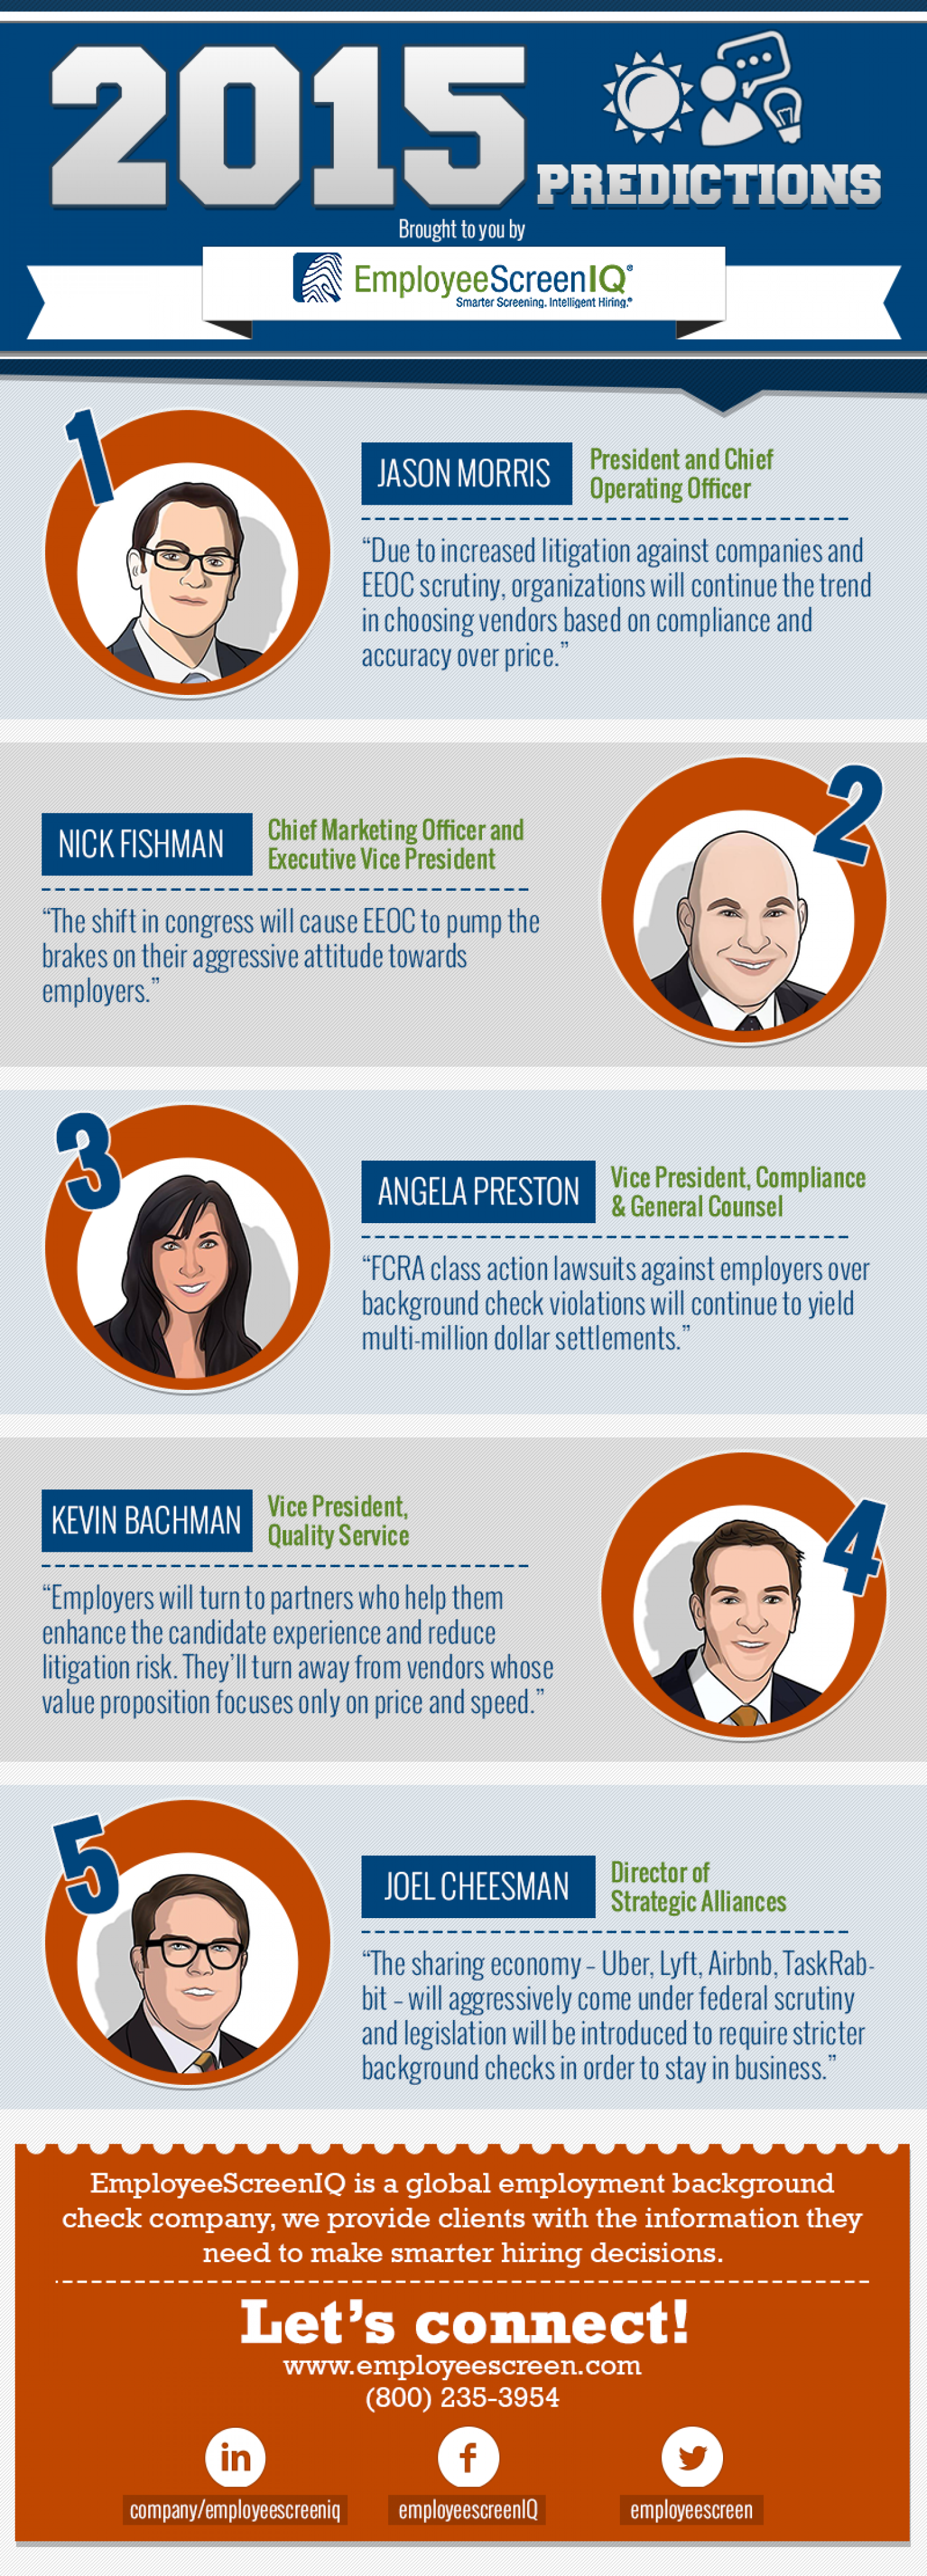 Employee Background Checks - 2015 Predictions Infographic